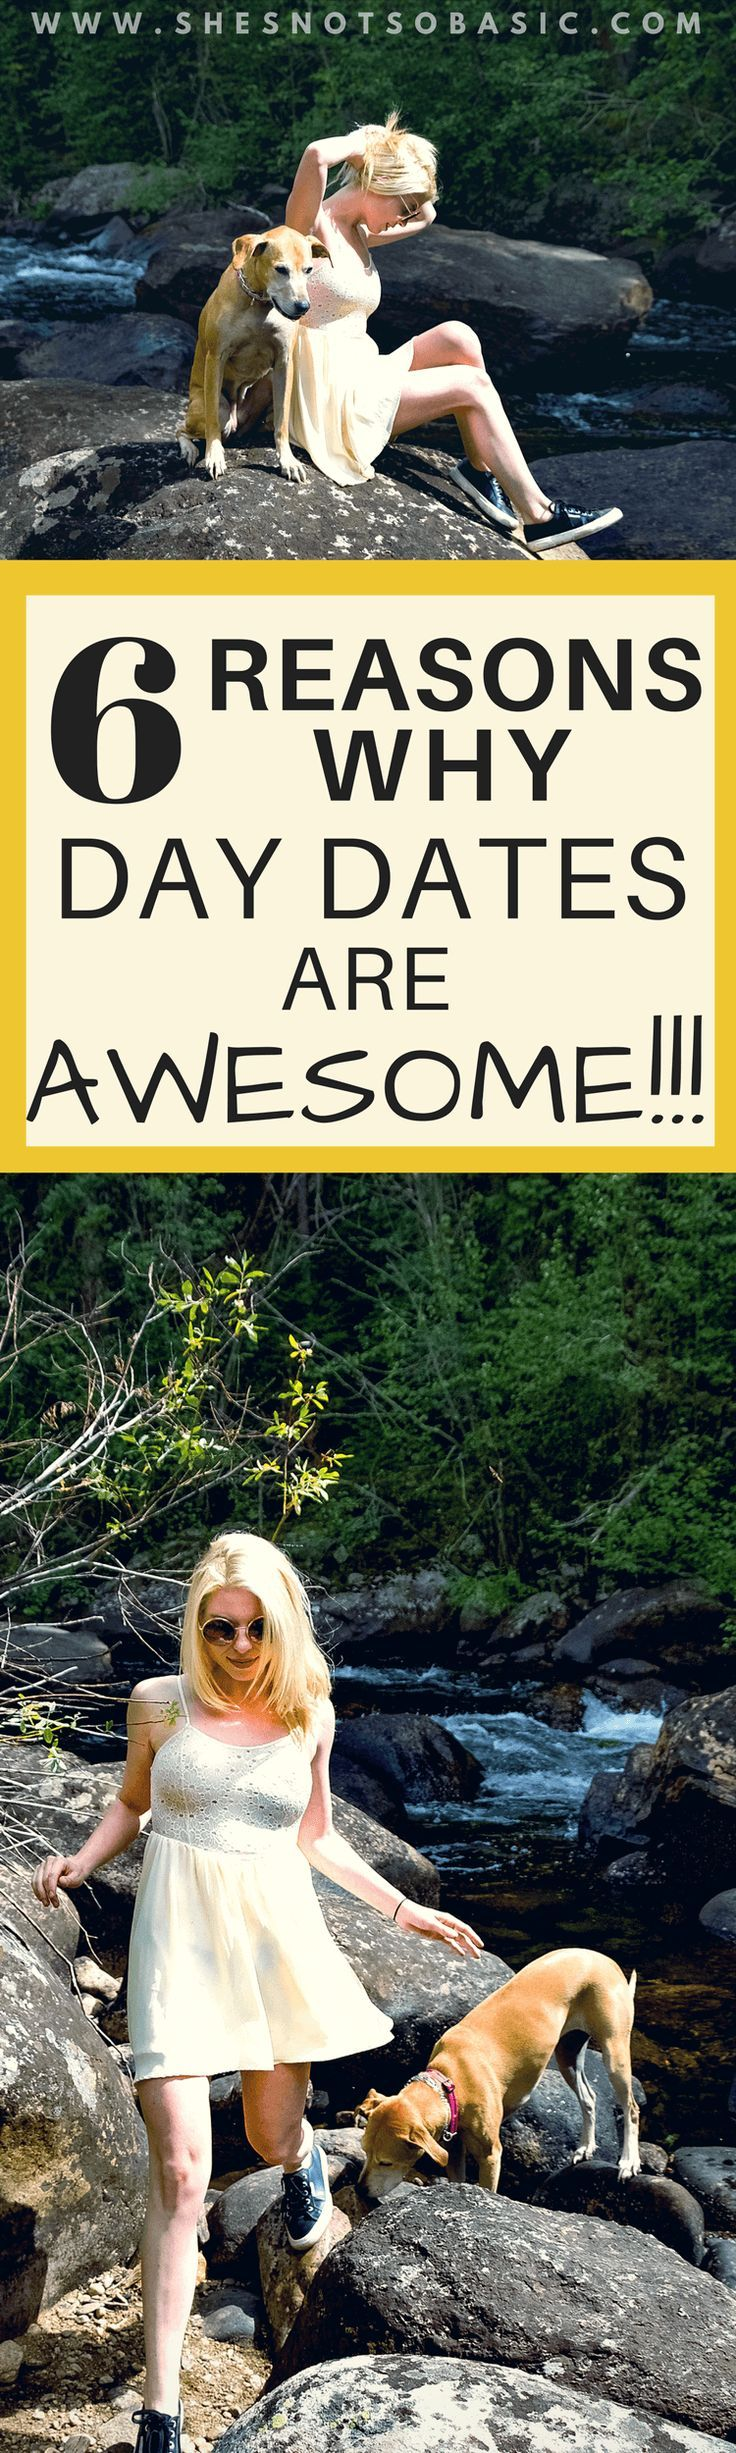 Day Dates Are Awesome, 6 Reason Why Day Dates Are Awesome, day dates, day date ideas, day dates outfits, day dates for couples, day dates ideas, dating advice, date ideas